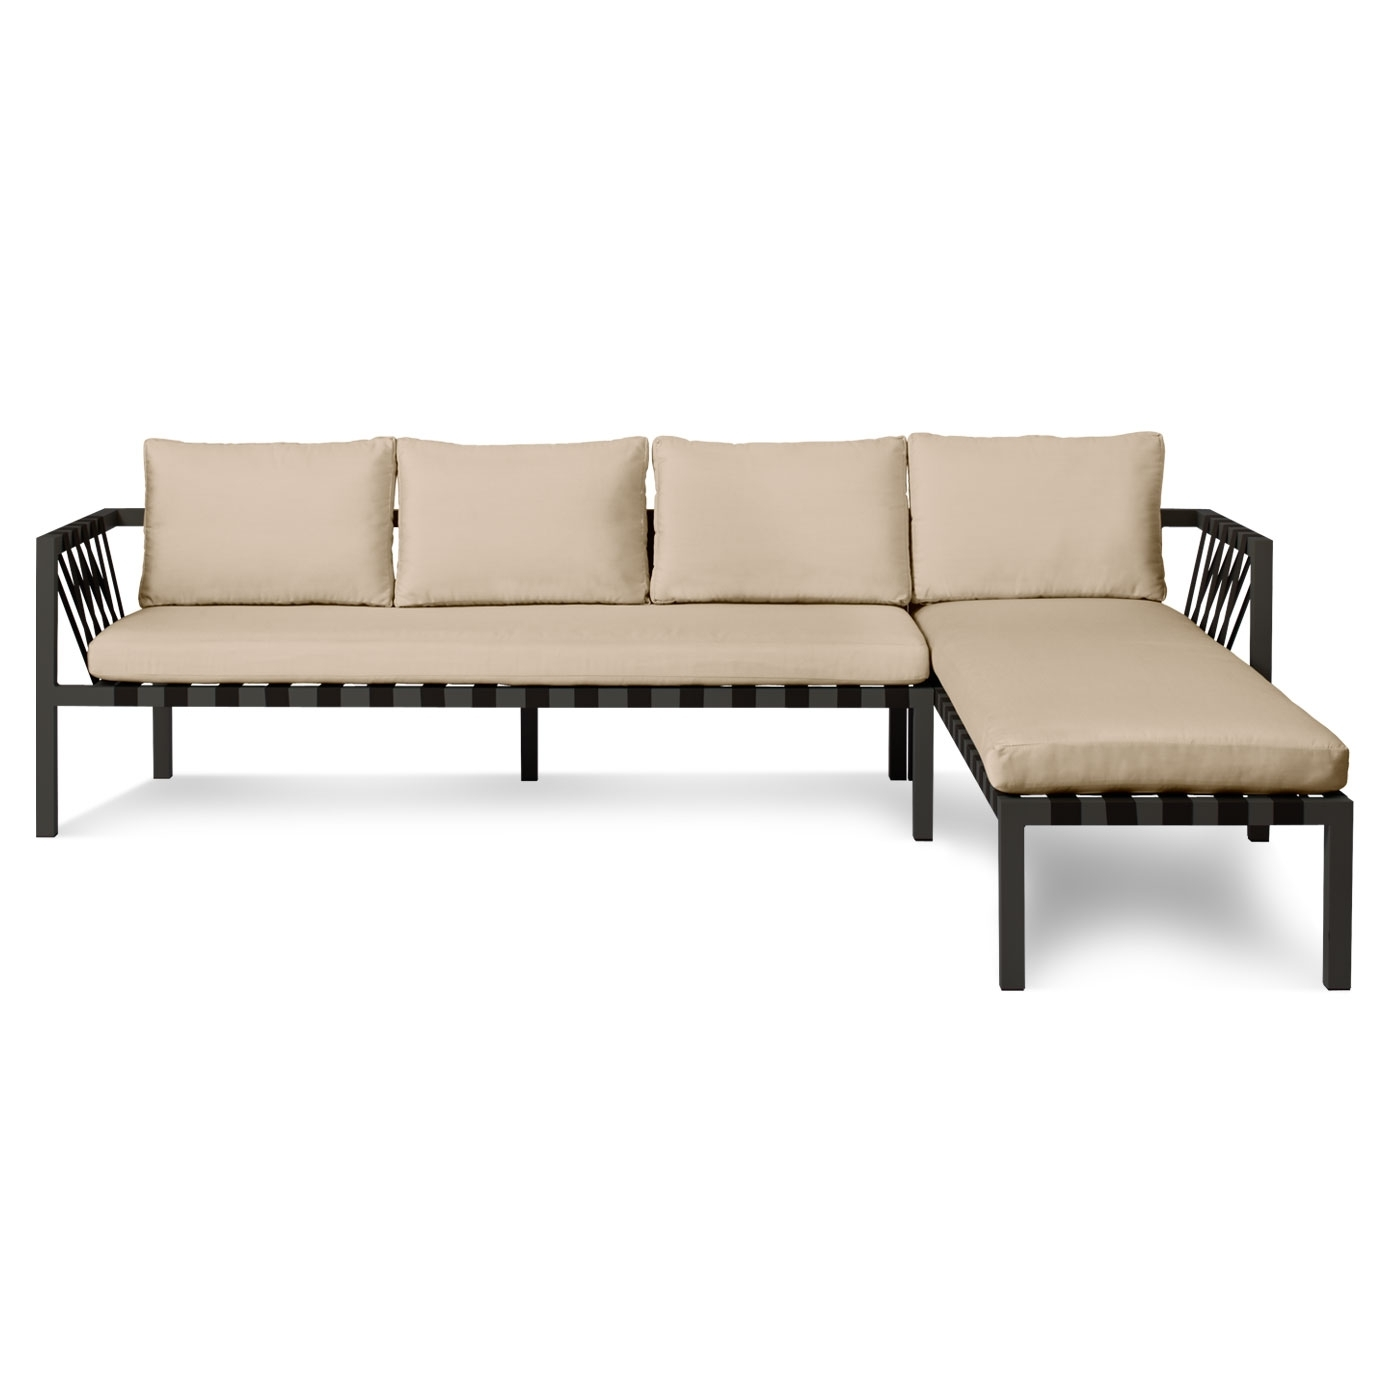 Vt Sectional Sofas With Regard To Most Recent Jibe Outdoor Sectional Sofa – Left Sectionals (View 21 of 21)